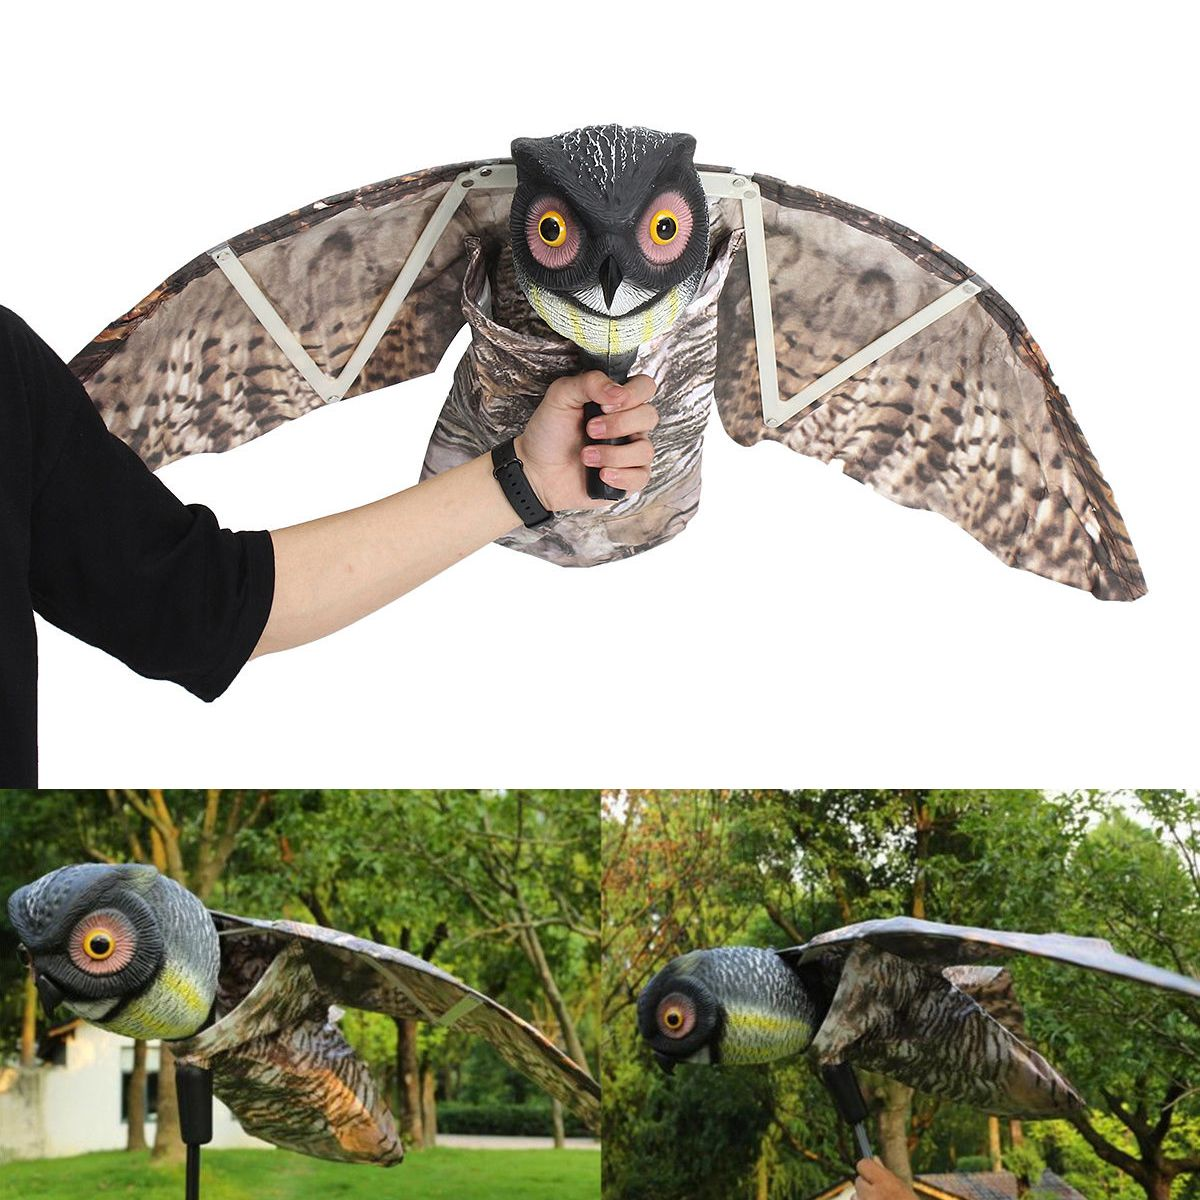 1pc Fake Prowler Owl With Moving Wing Bird Proof Repellent Garden Decoy Pest Scarer Sparrow Bird Control Supplies1pc Fake Prowler Owl With Moving Wing Bird Proof Repellent Garden Decoy Pest Scarer Sparrow Bird Control Supplies